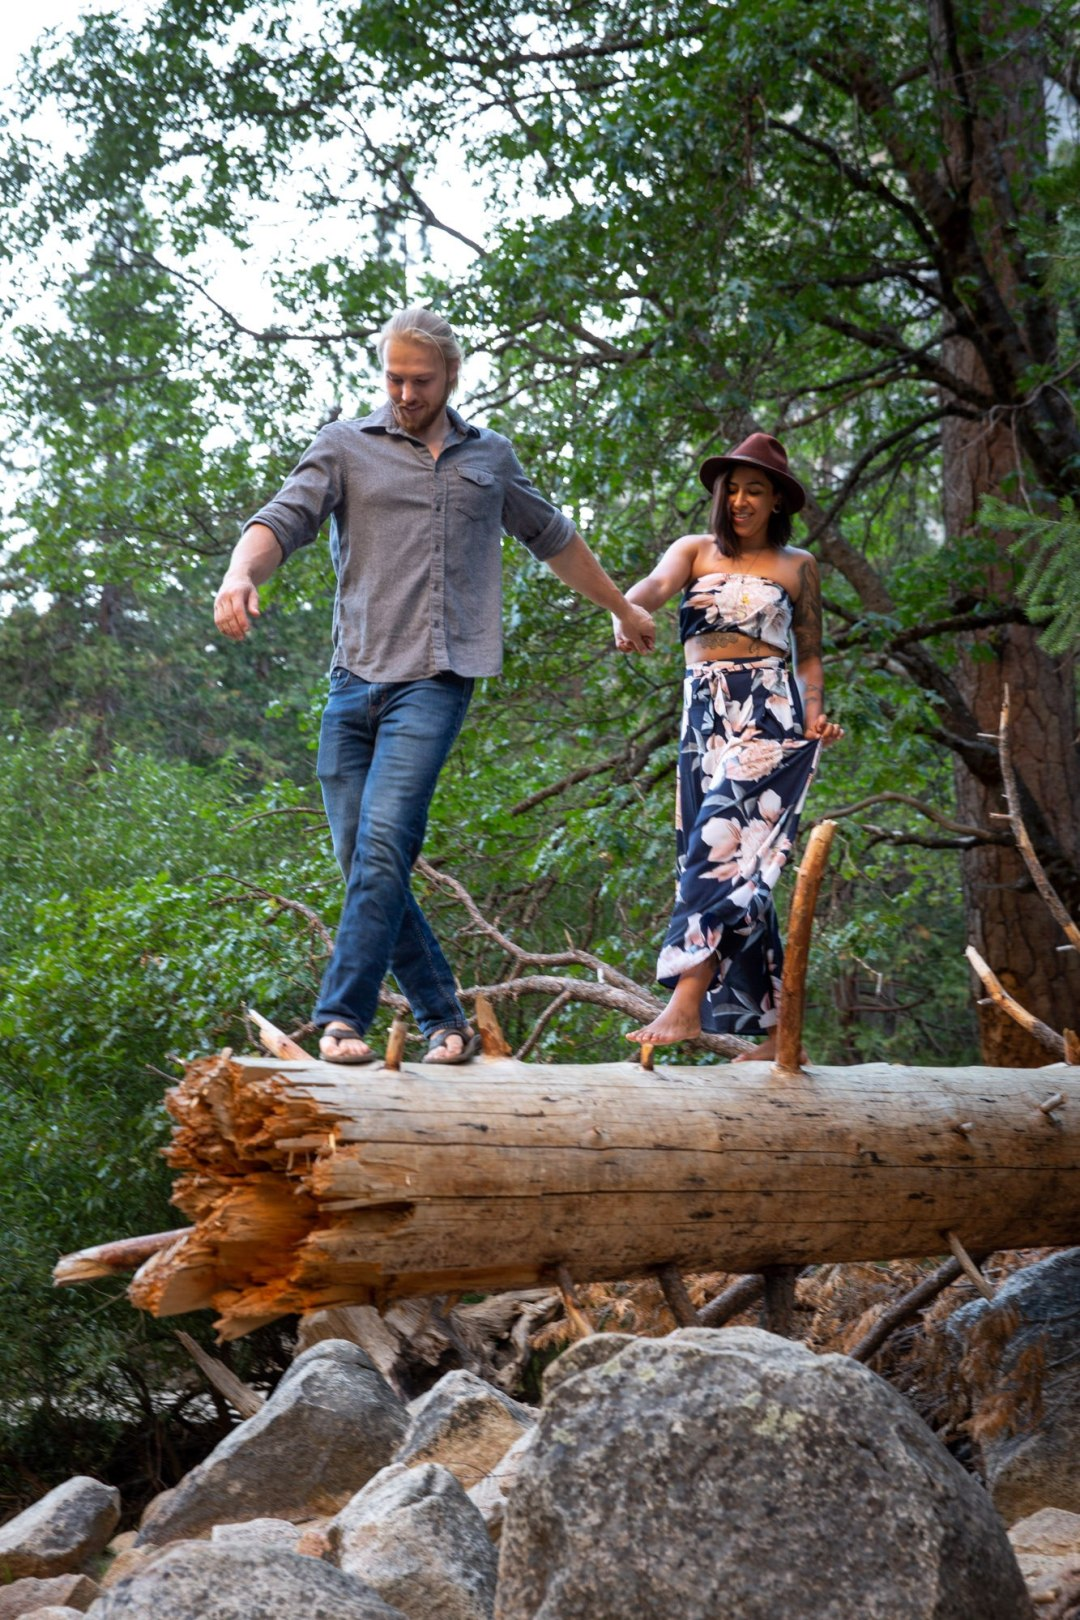 Jon & Tori walking out on a fallen tree during an adventure session.